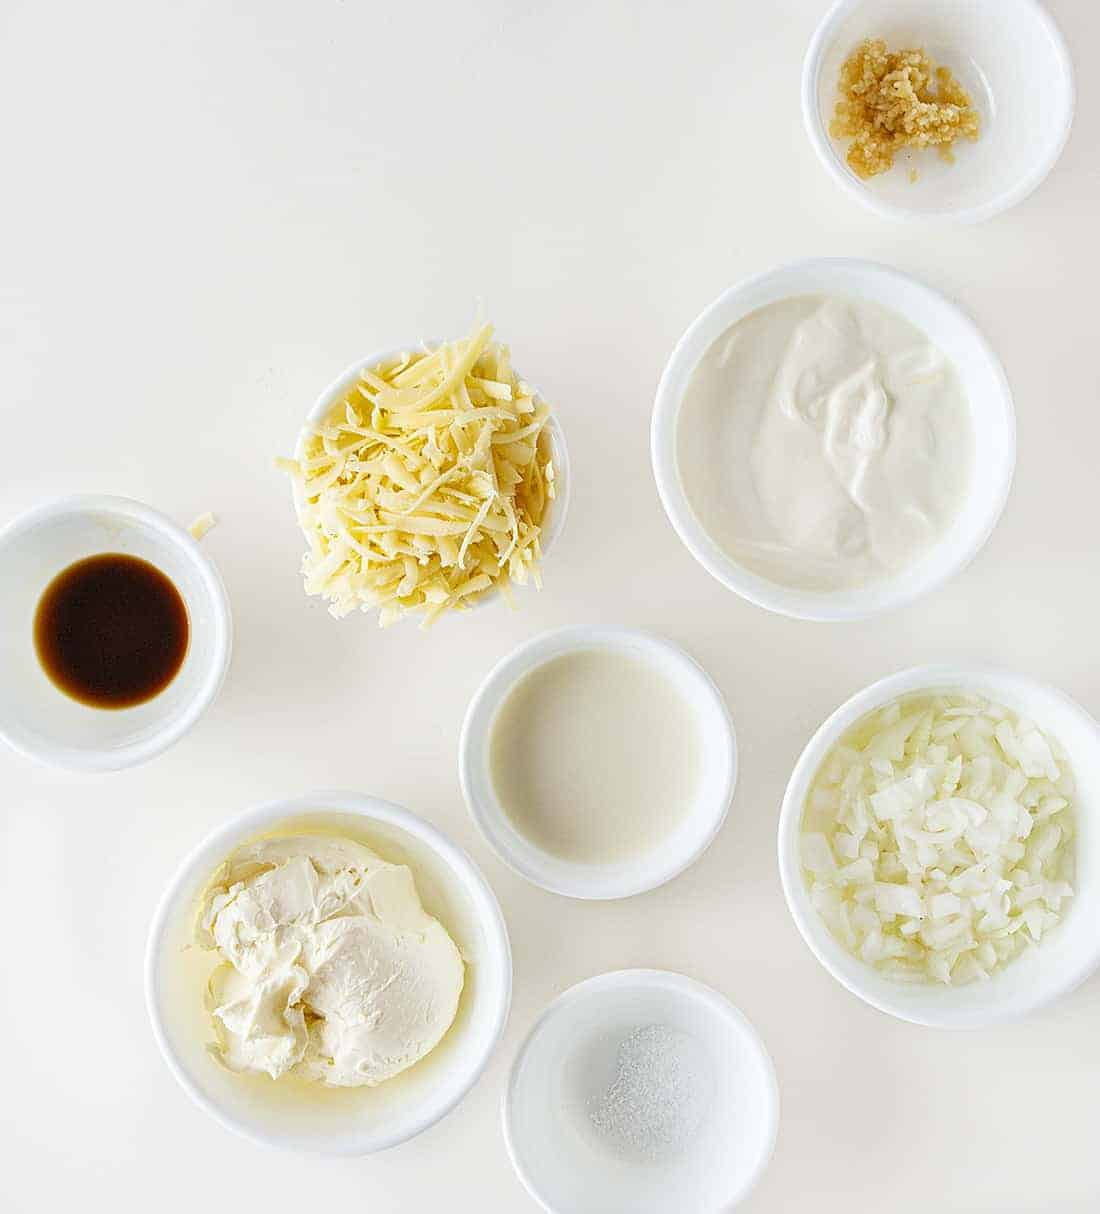 Ingredients for Homemade French Onion Dip